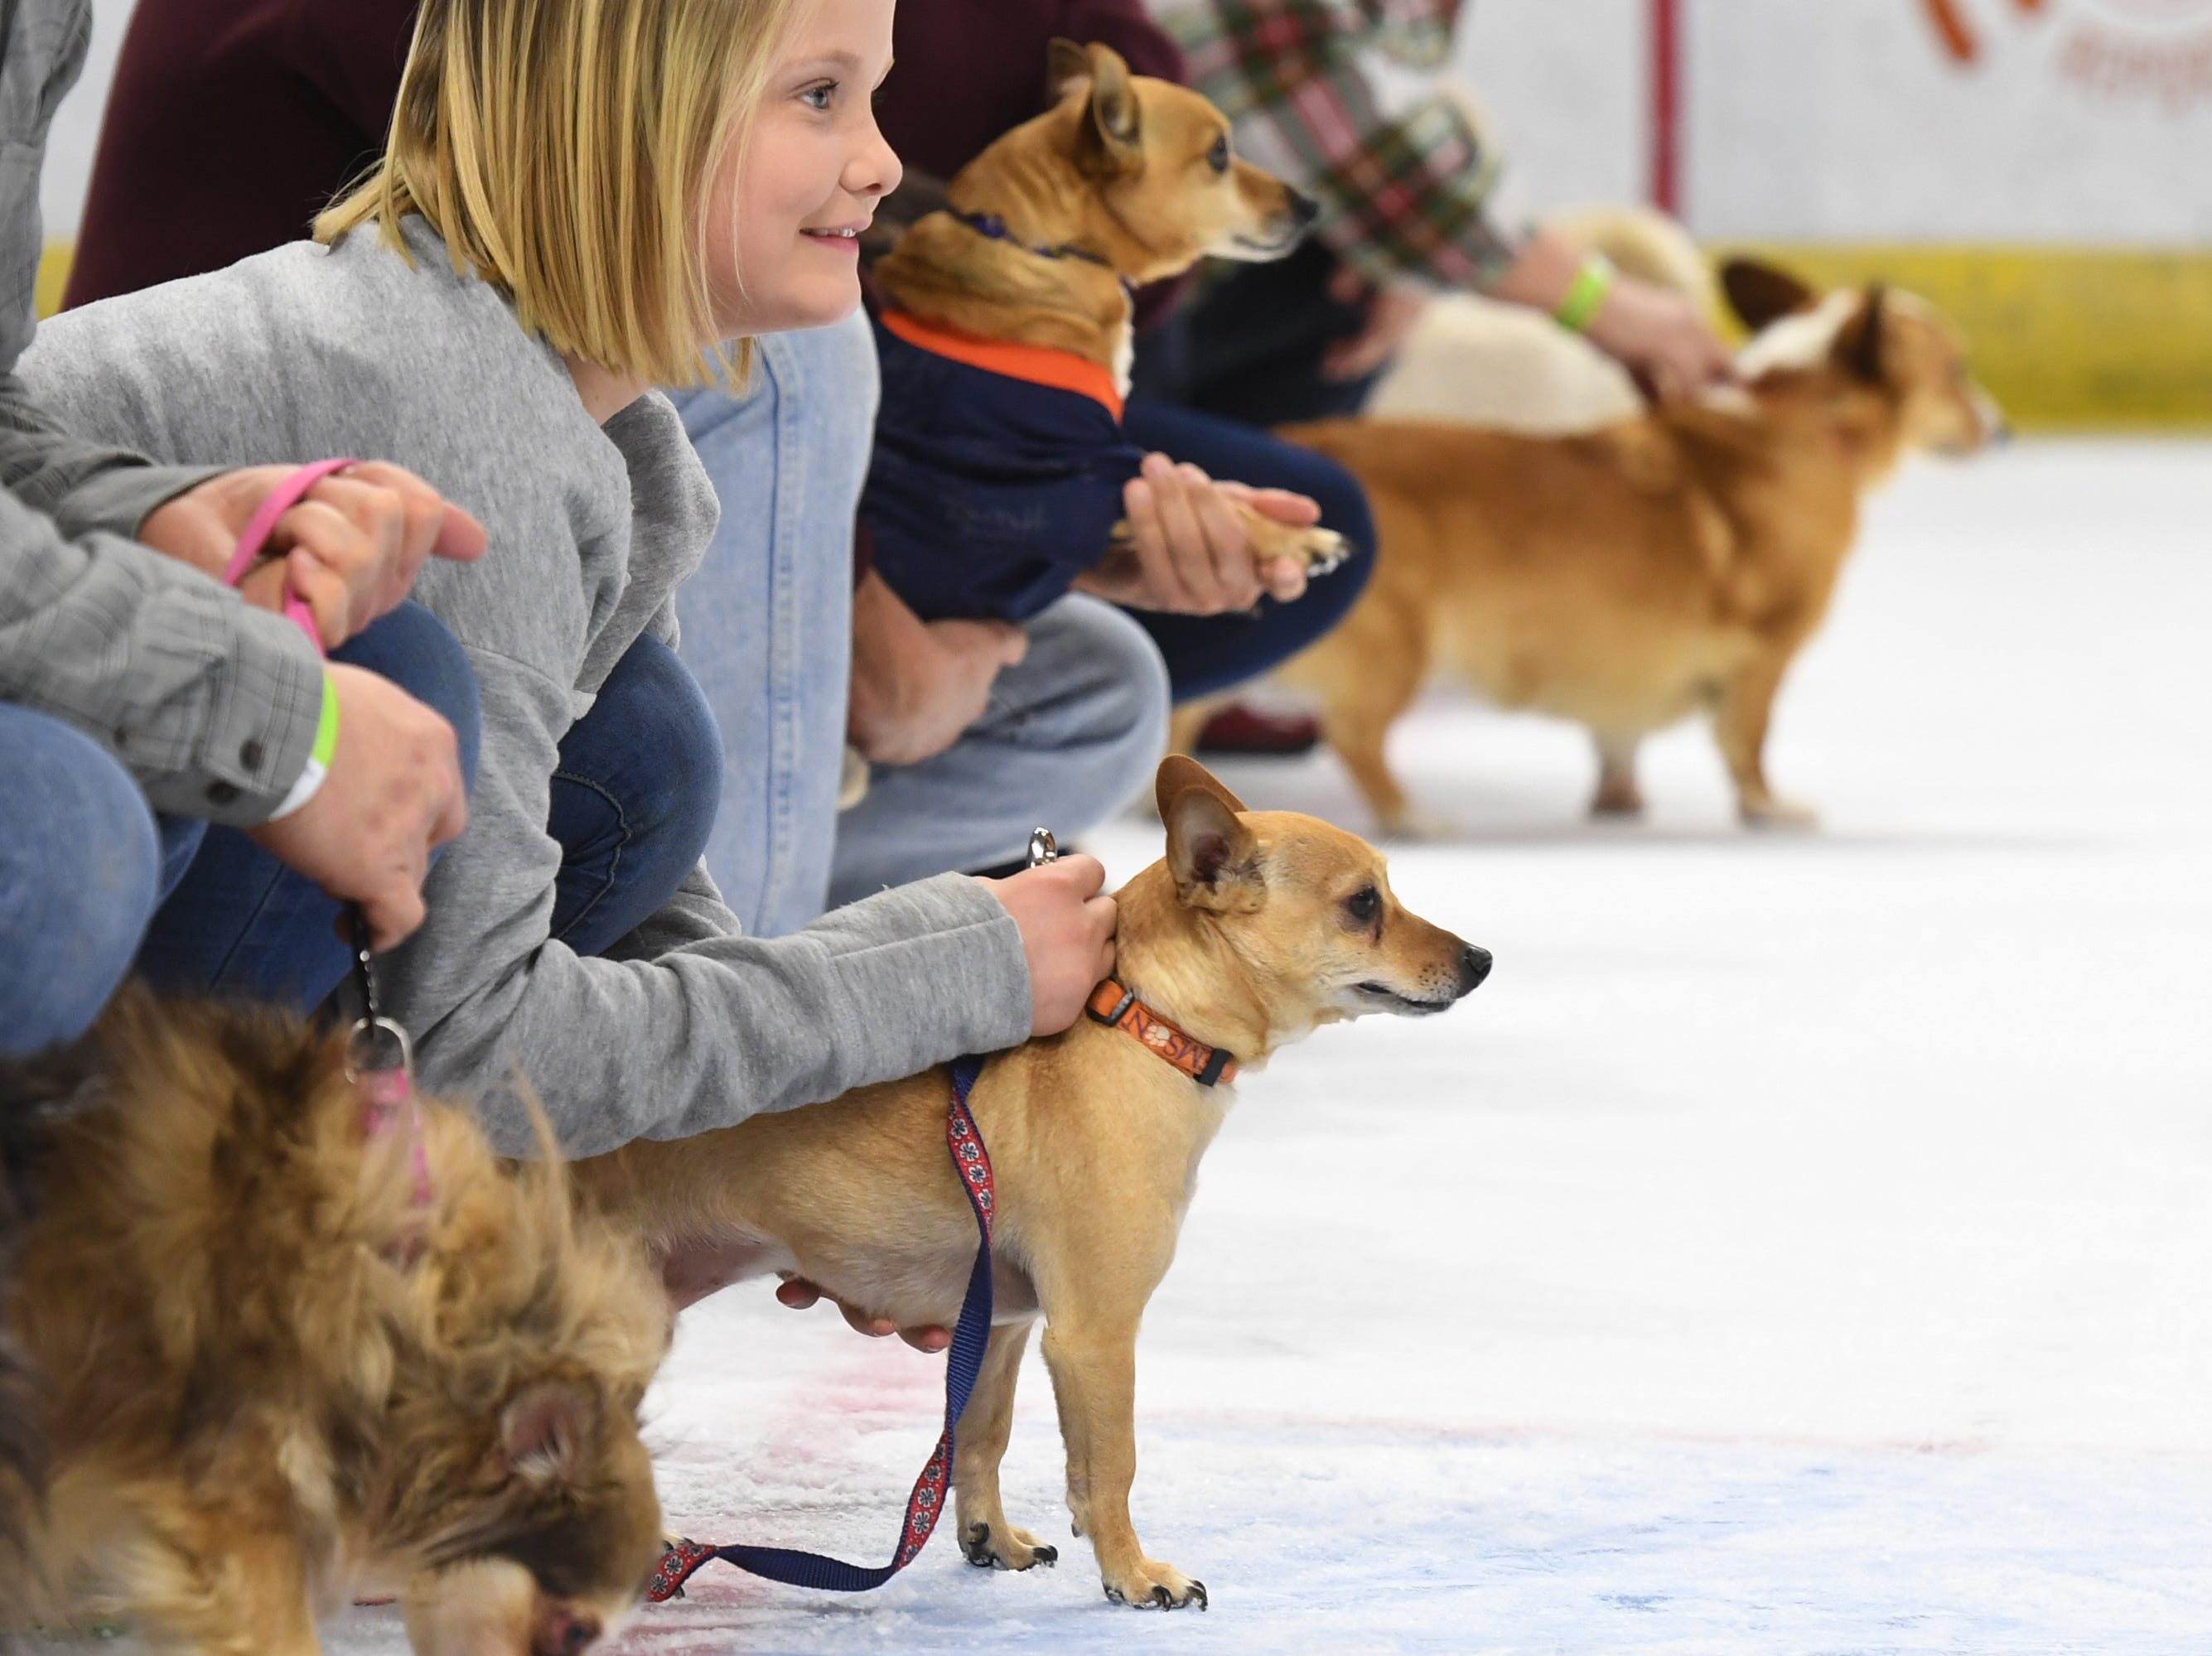 Owners line up their dogs to race on the ice at intermission of the Greenville Swamp Rabbits game against the Florida Everblades Saturday, Feb. 2, 2019. Saturday was Pucks N' Paws night at Bon Secours Wellness Arena.